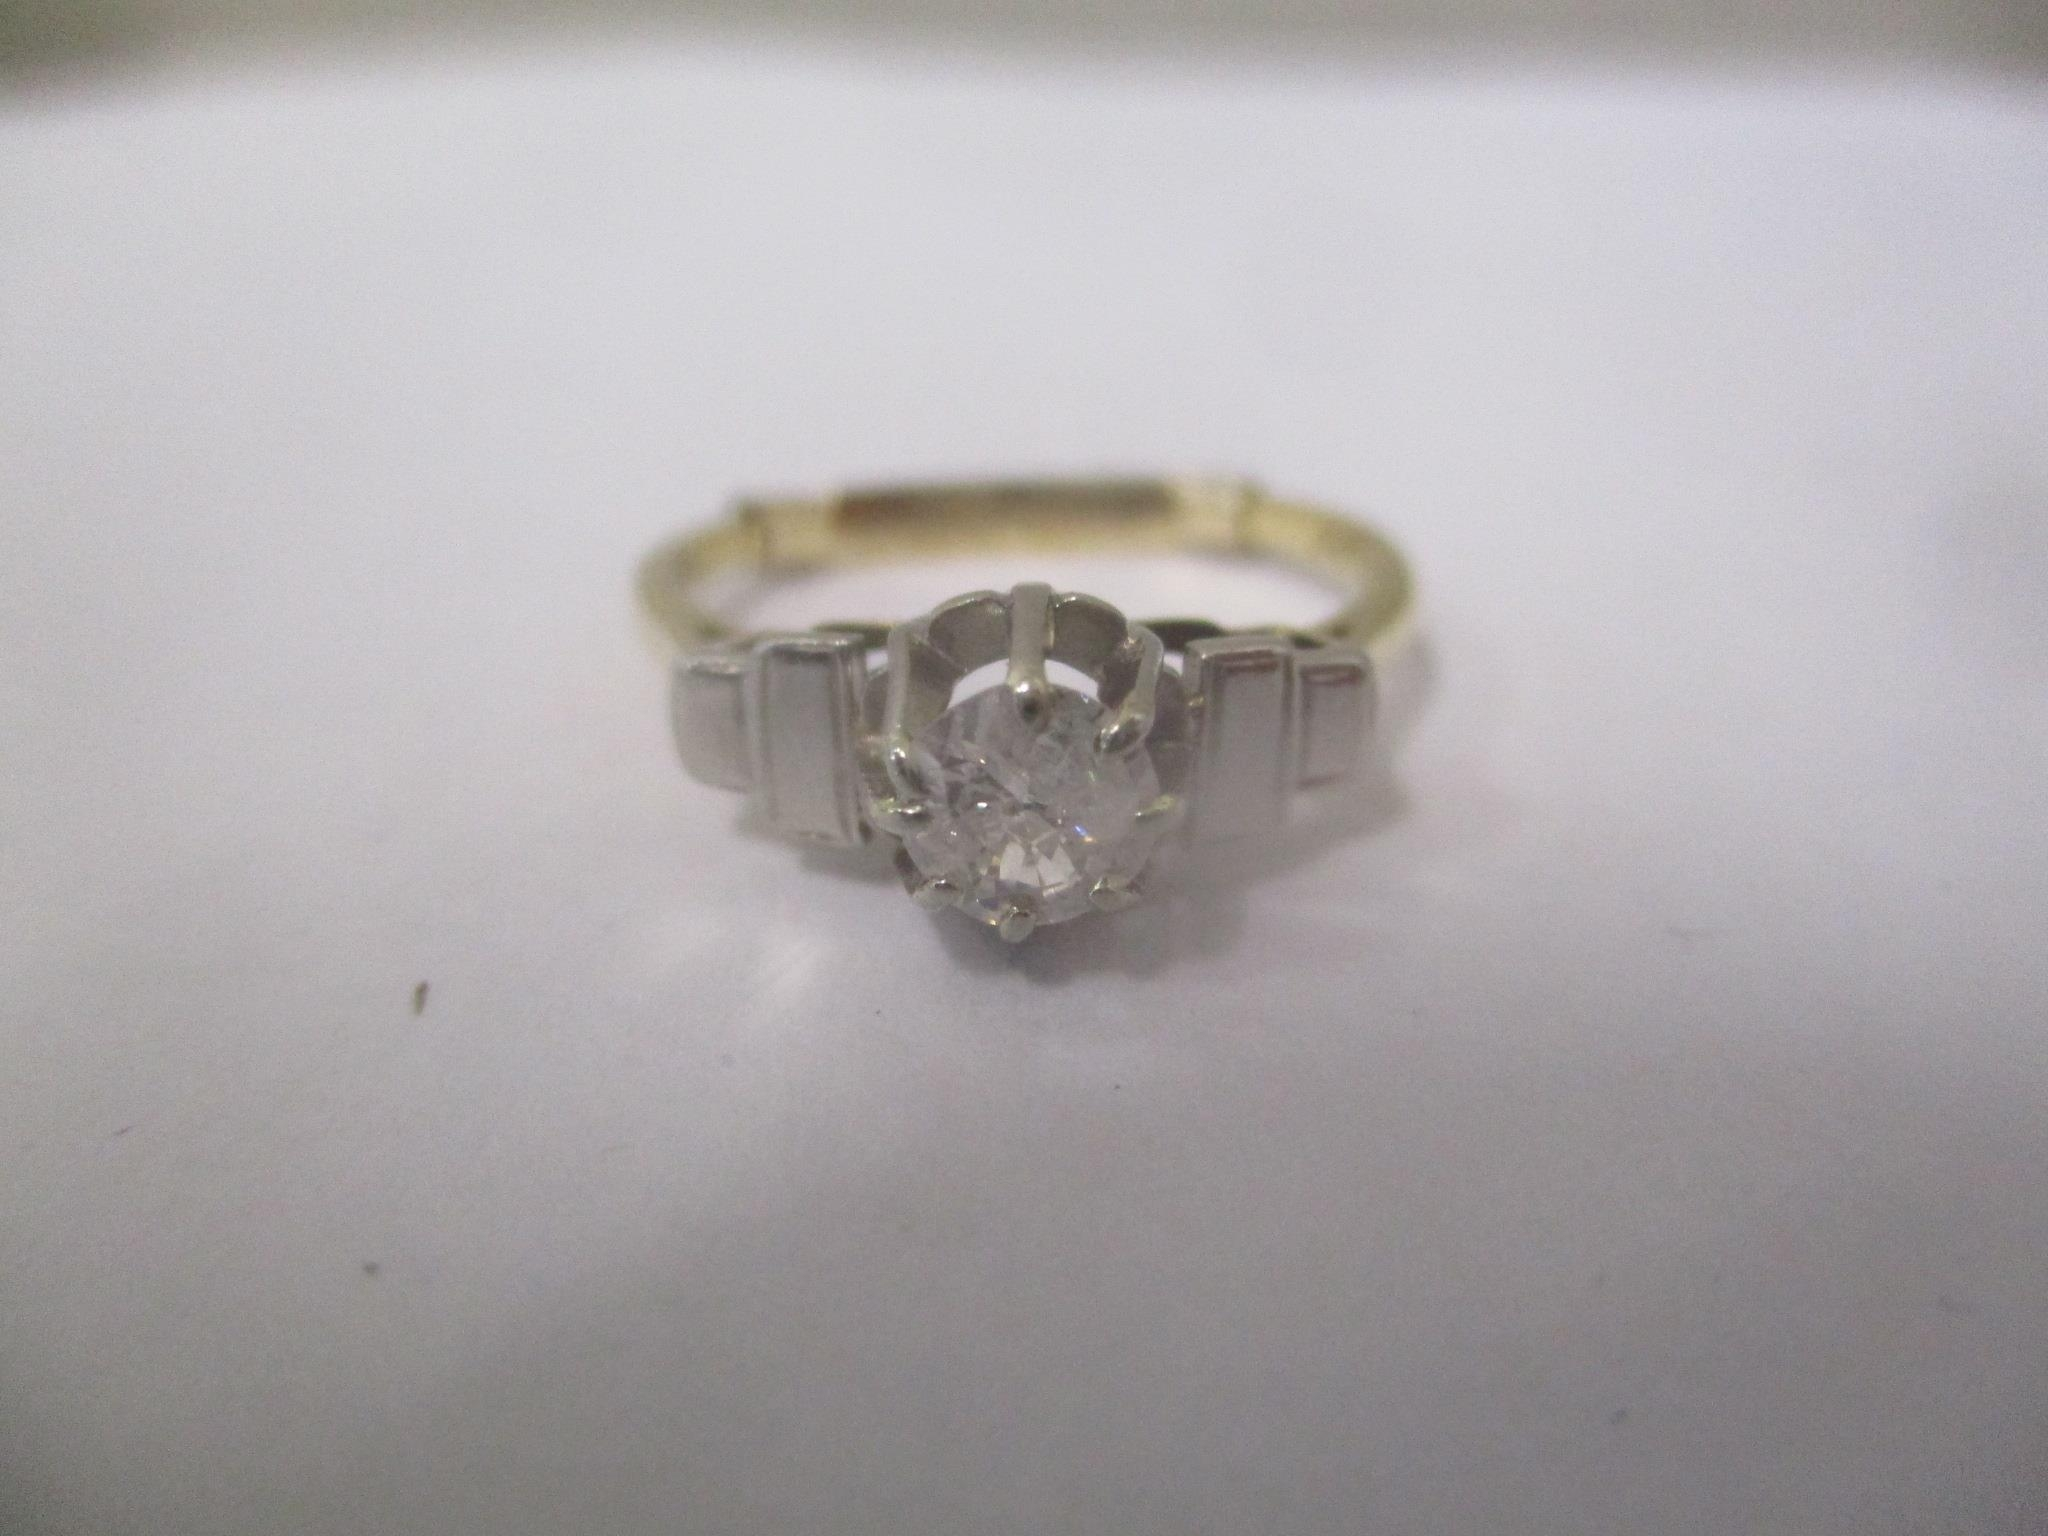 An 18ct yellow gold single stone ring with a platinum head and shoulders, claw set with a